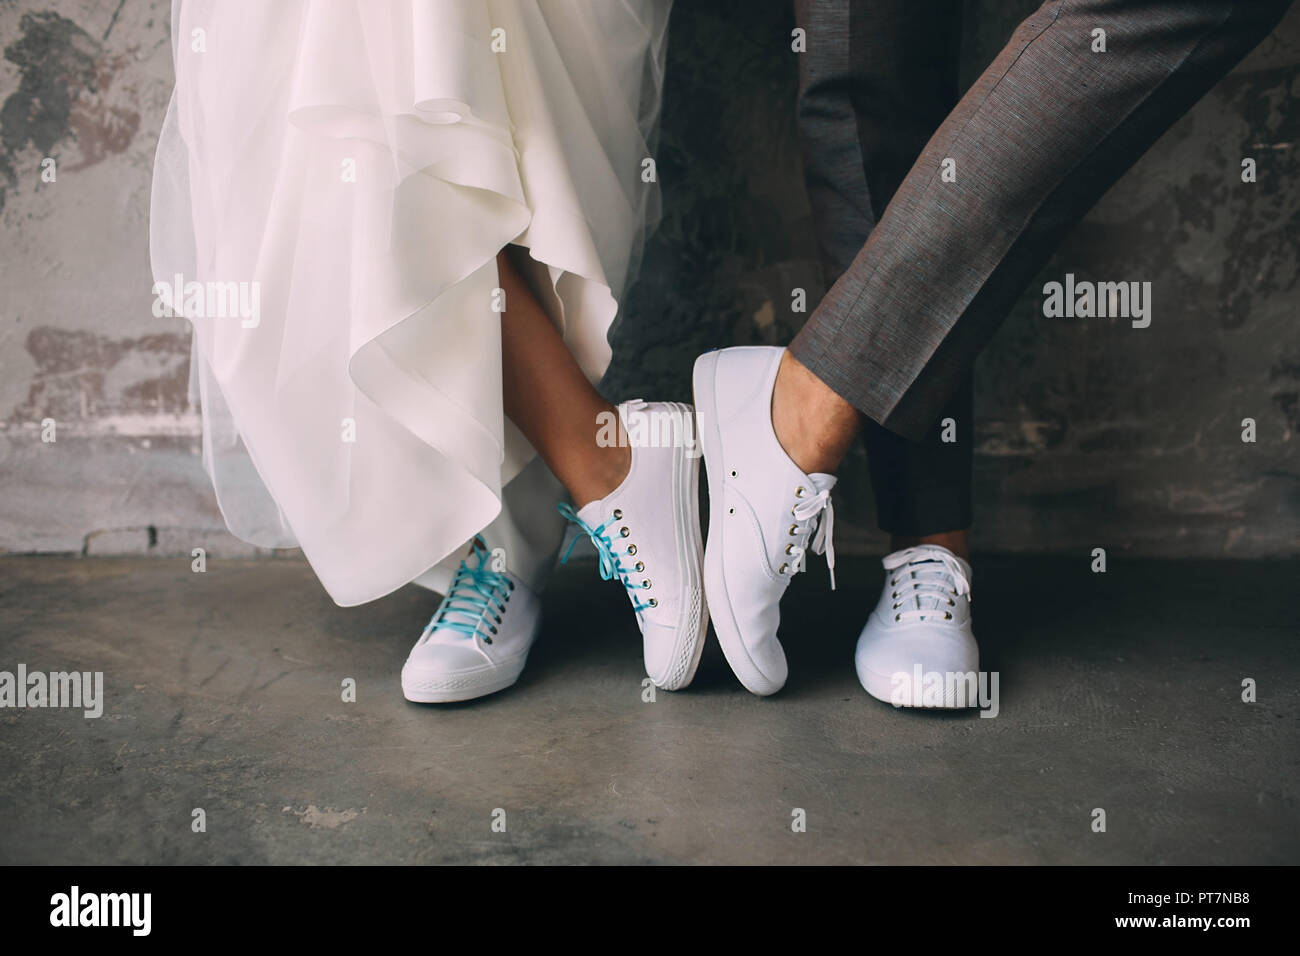 Weiße Flip Flops Hochzeit Wedding Feet Stockfotos And Wedding Feet Bilder Alamy